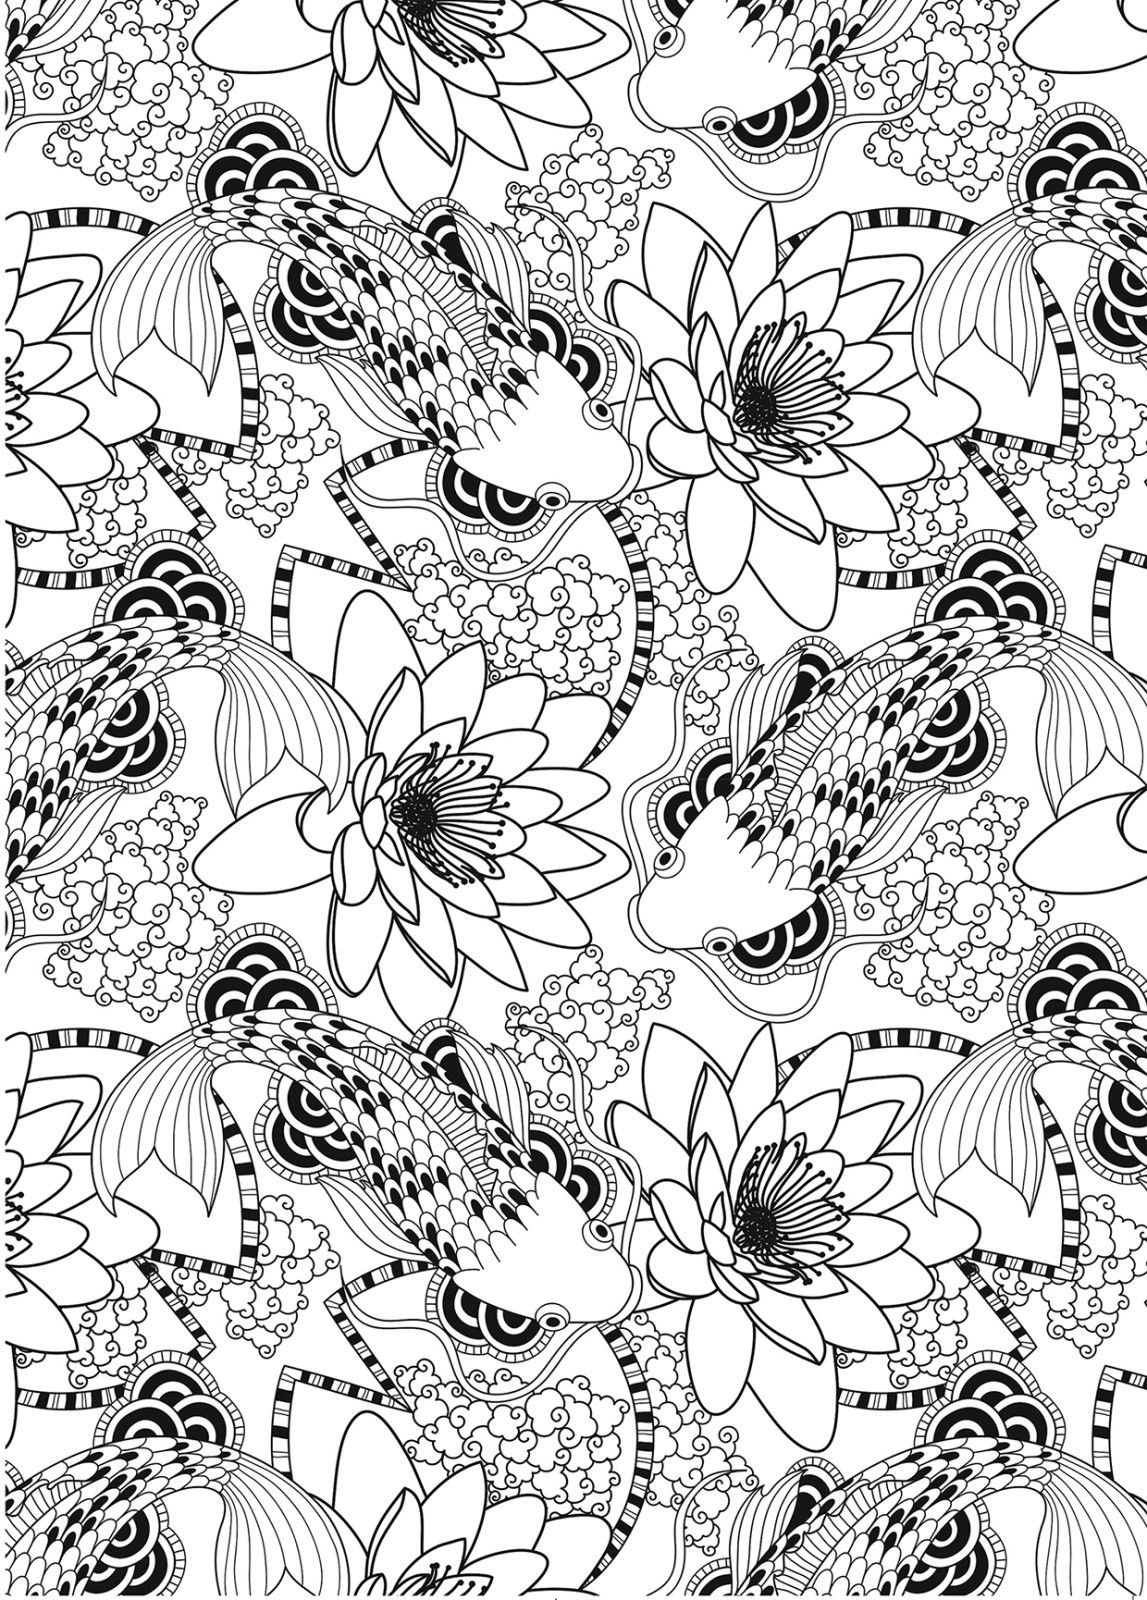 Koi Pond Pattern Free Download Fish Coloring Page Free Adult